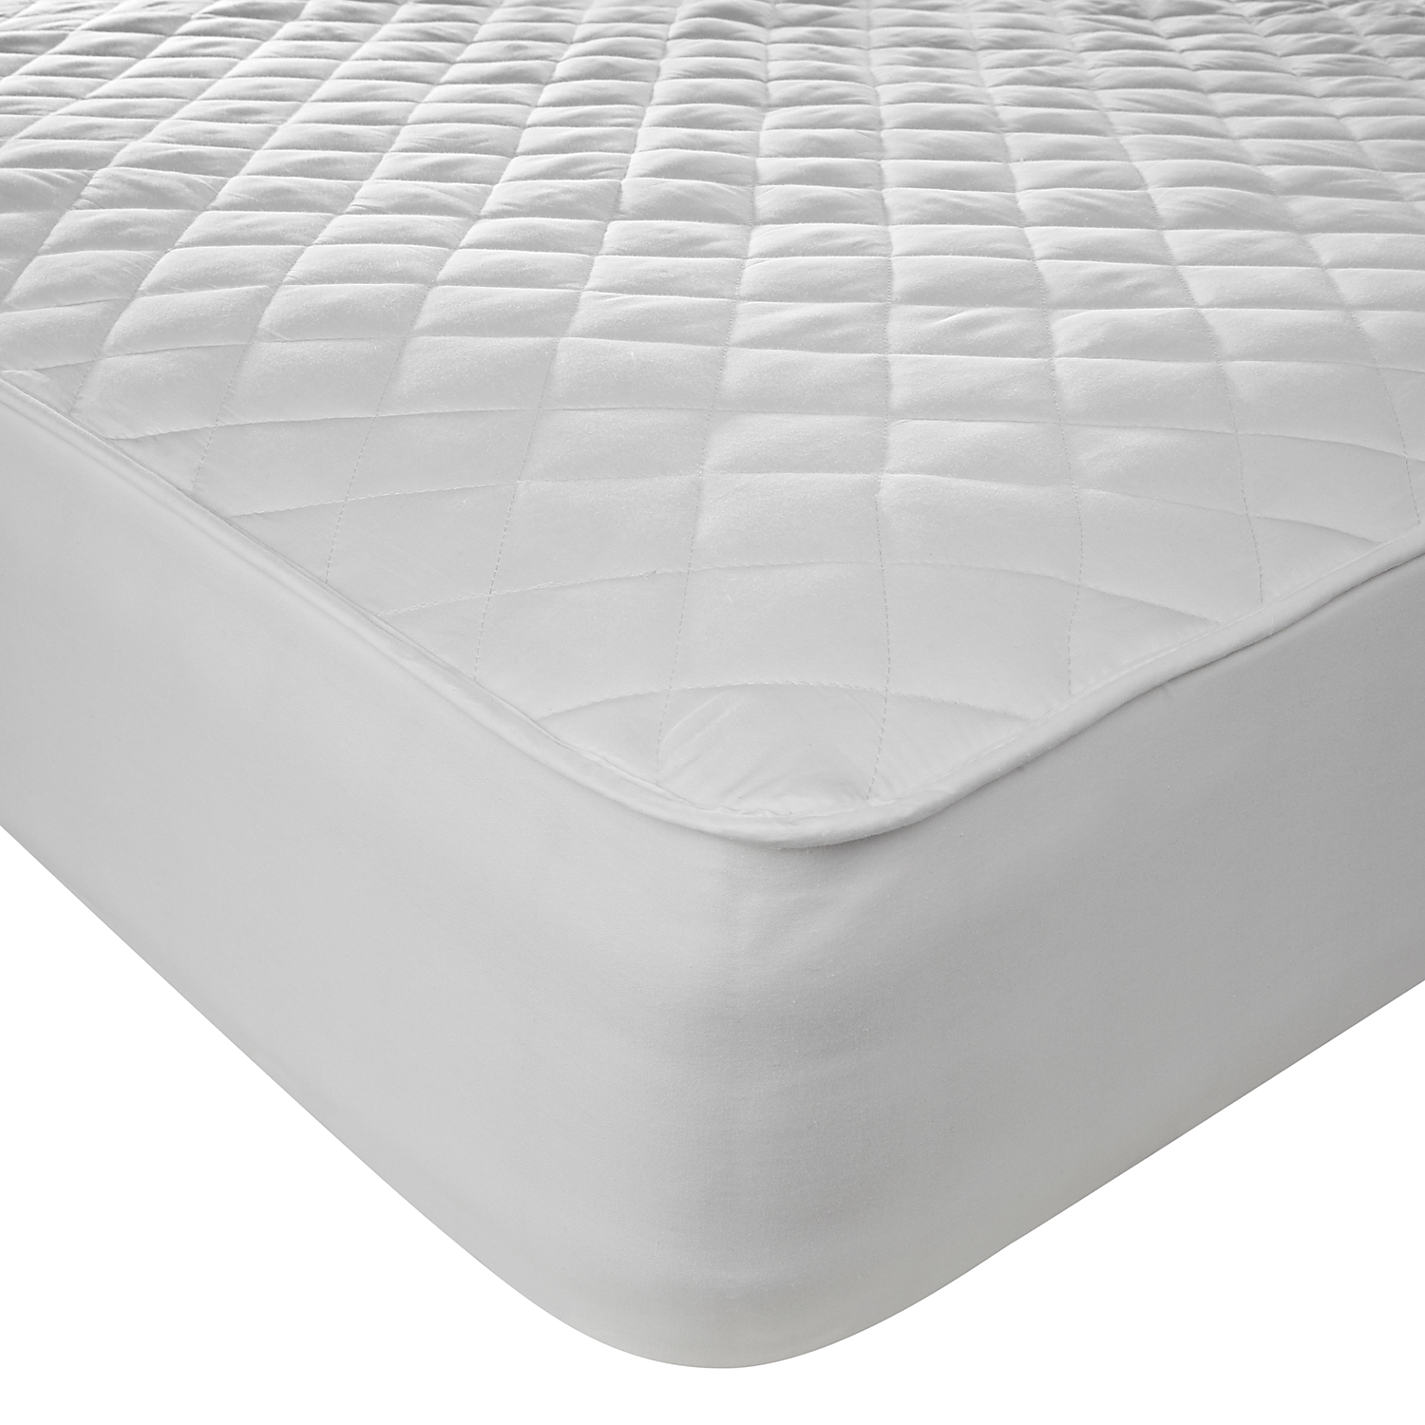 John Lewis Active Anti Allergy Quilted Mattress Protector Online At Johnlewis